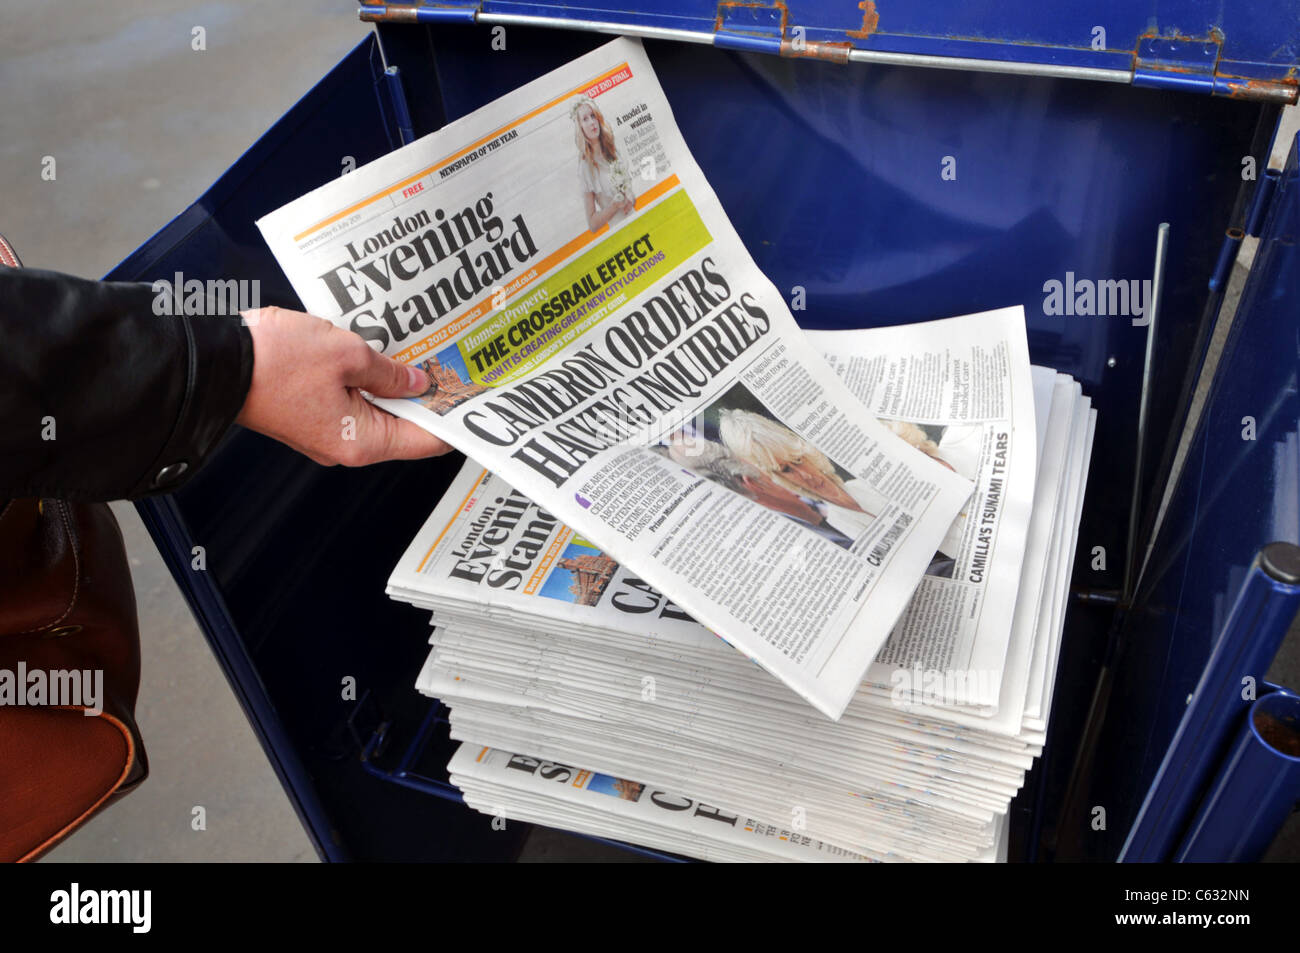 London Evening Standard newspaper, London, Britain, UK - Stock Image